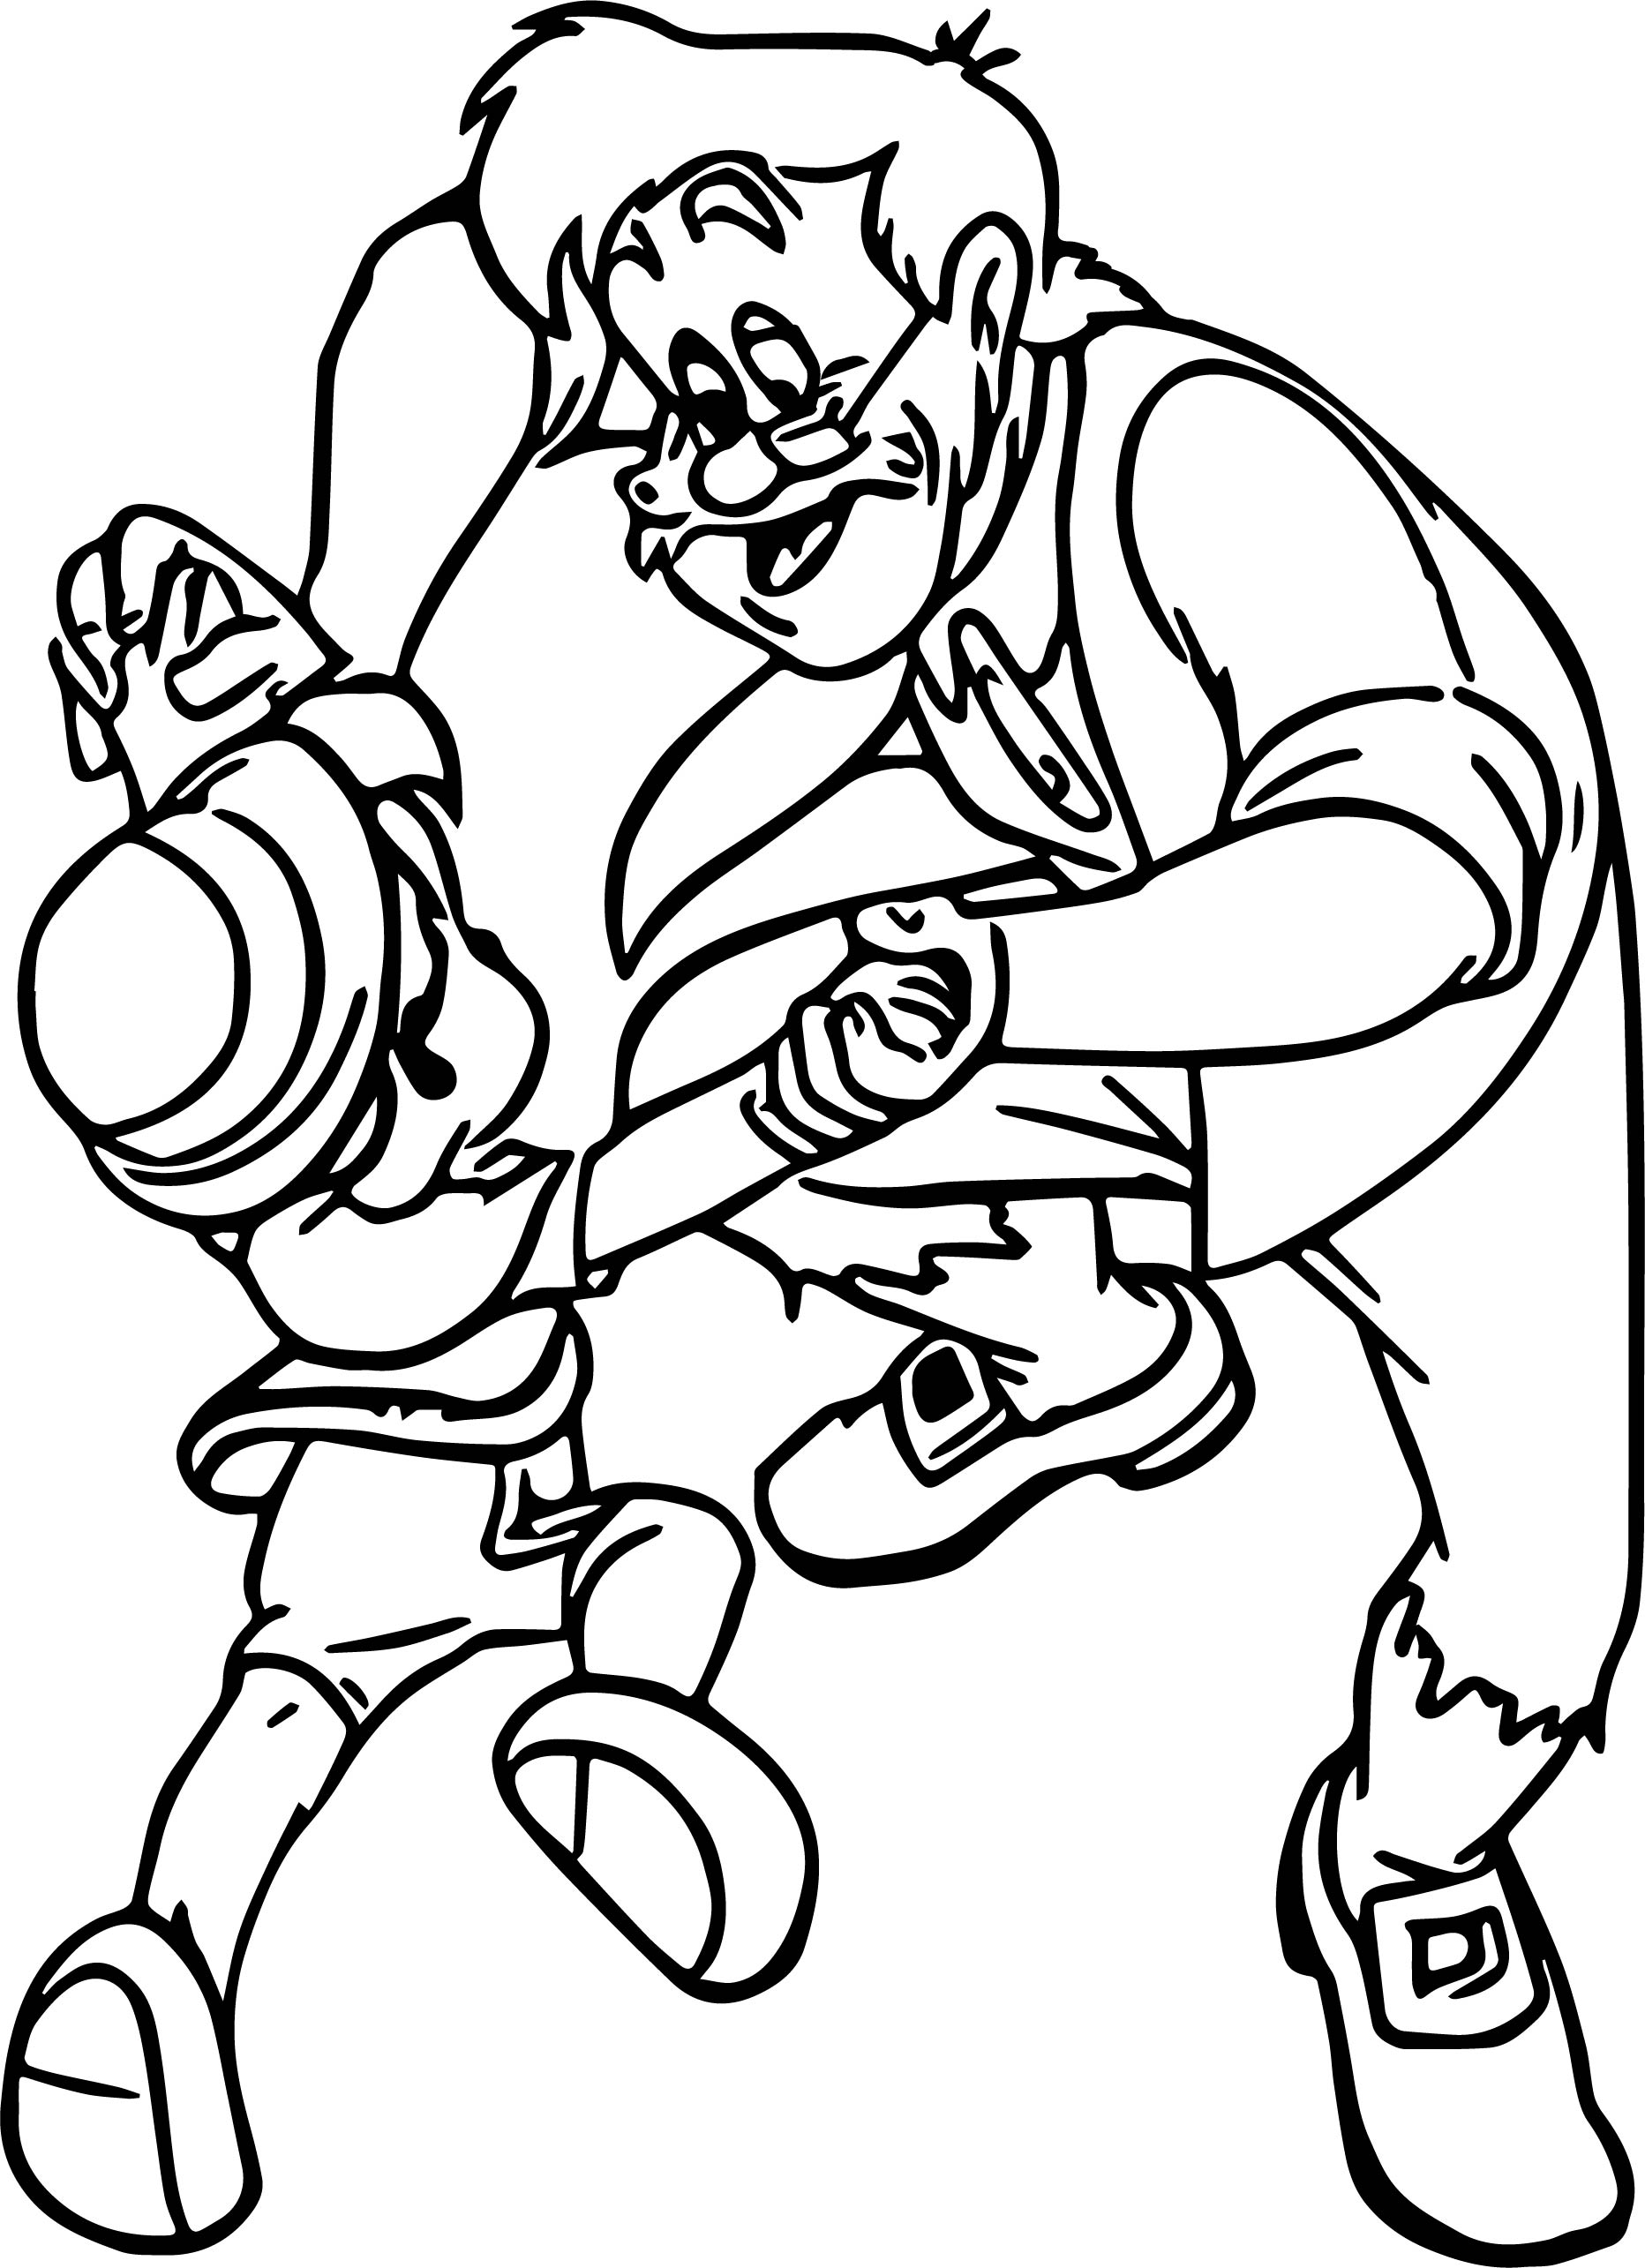 Gepetto Son Dancing Coloring Page